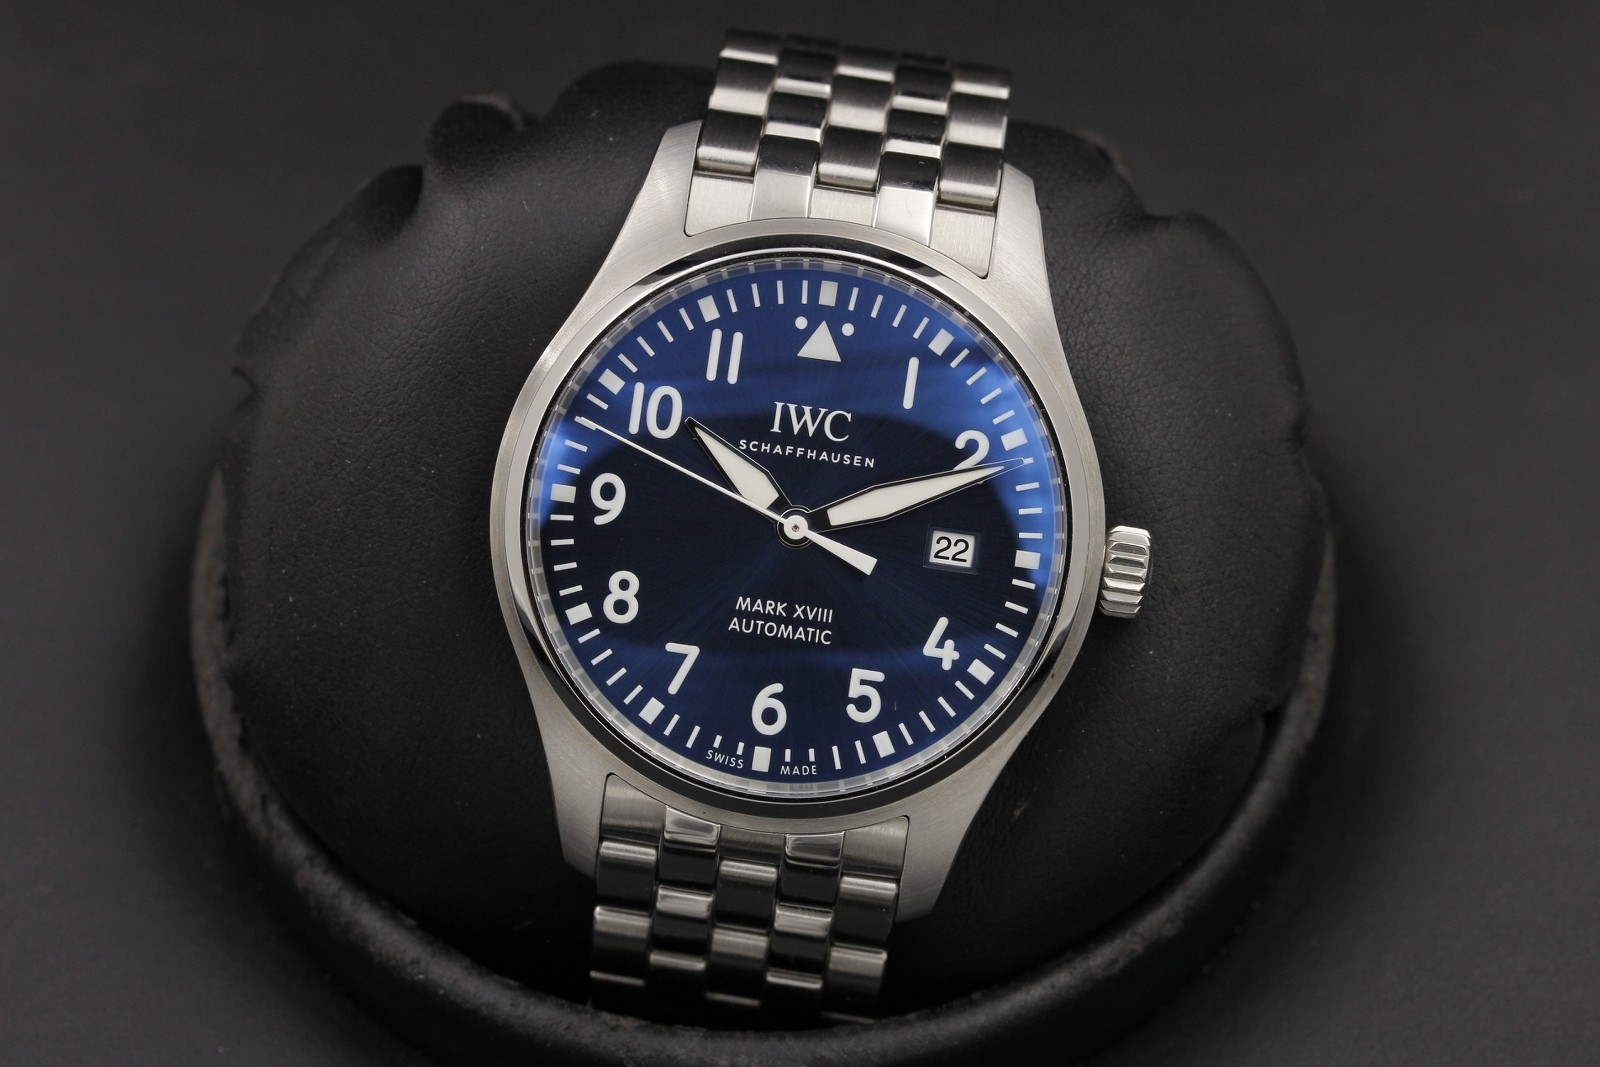 Iwc serial number dating